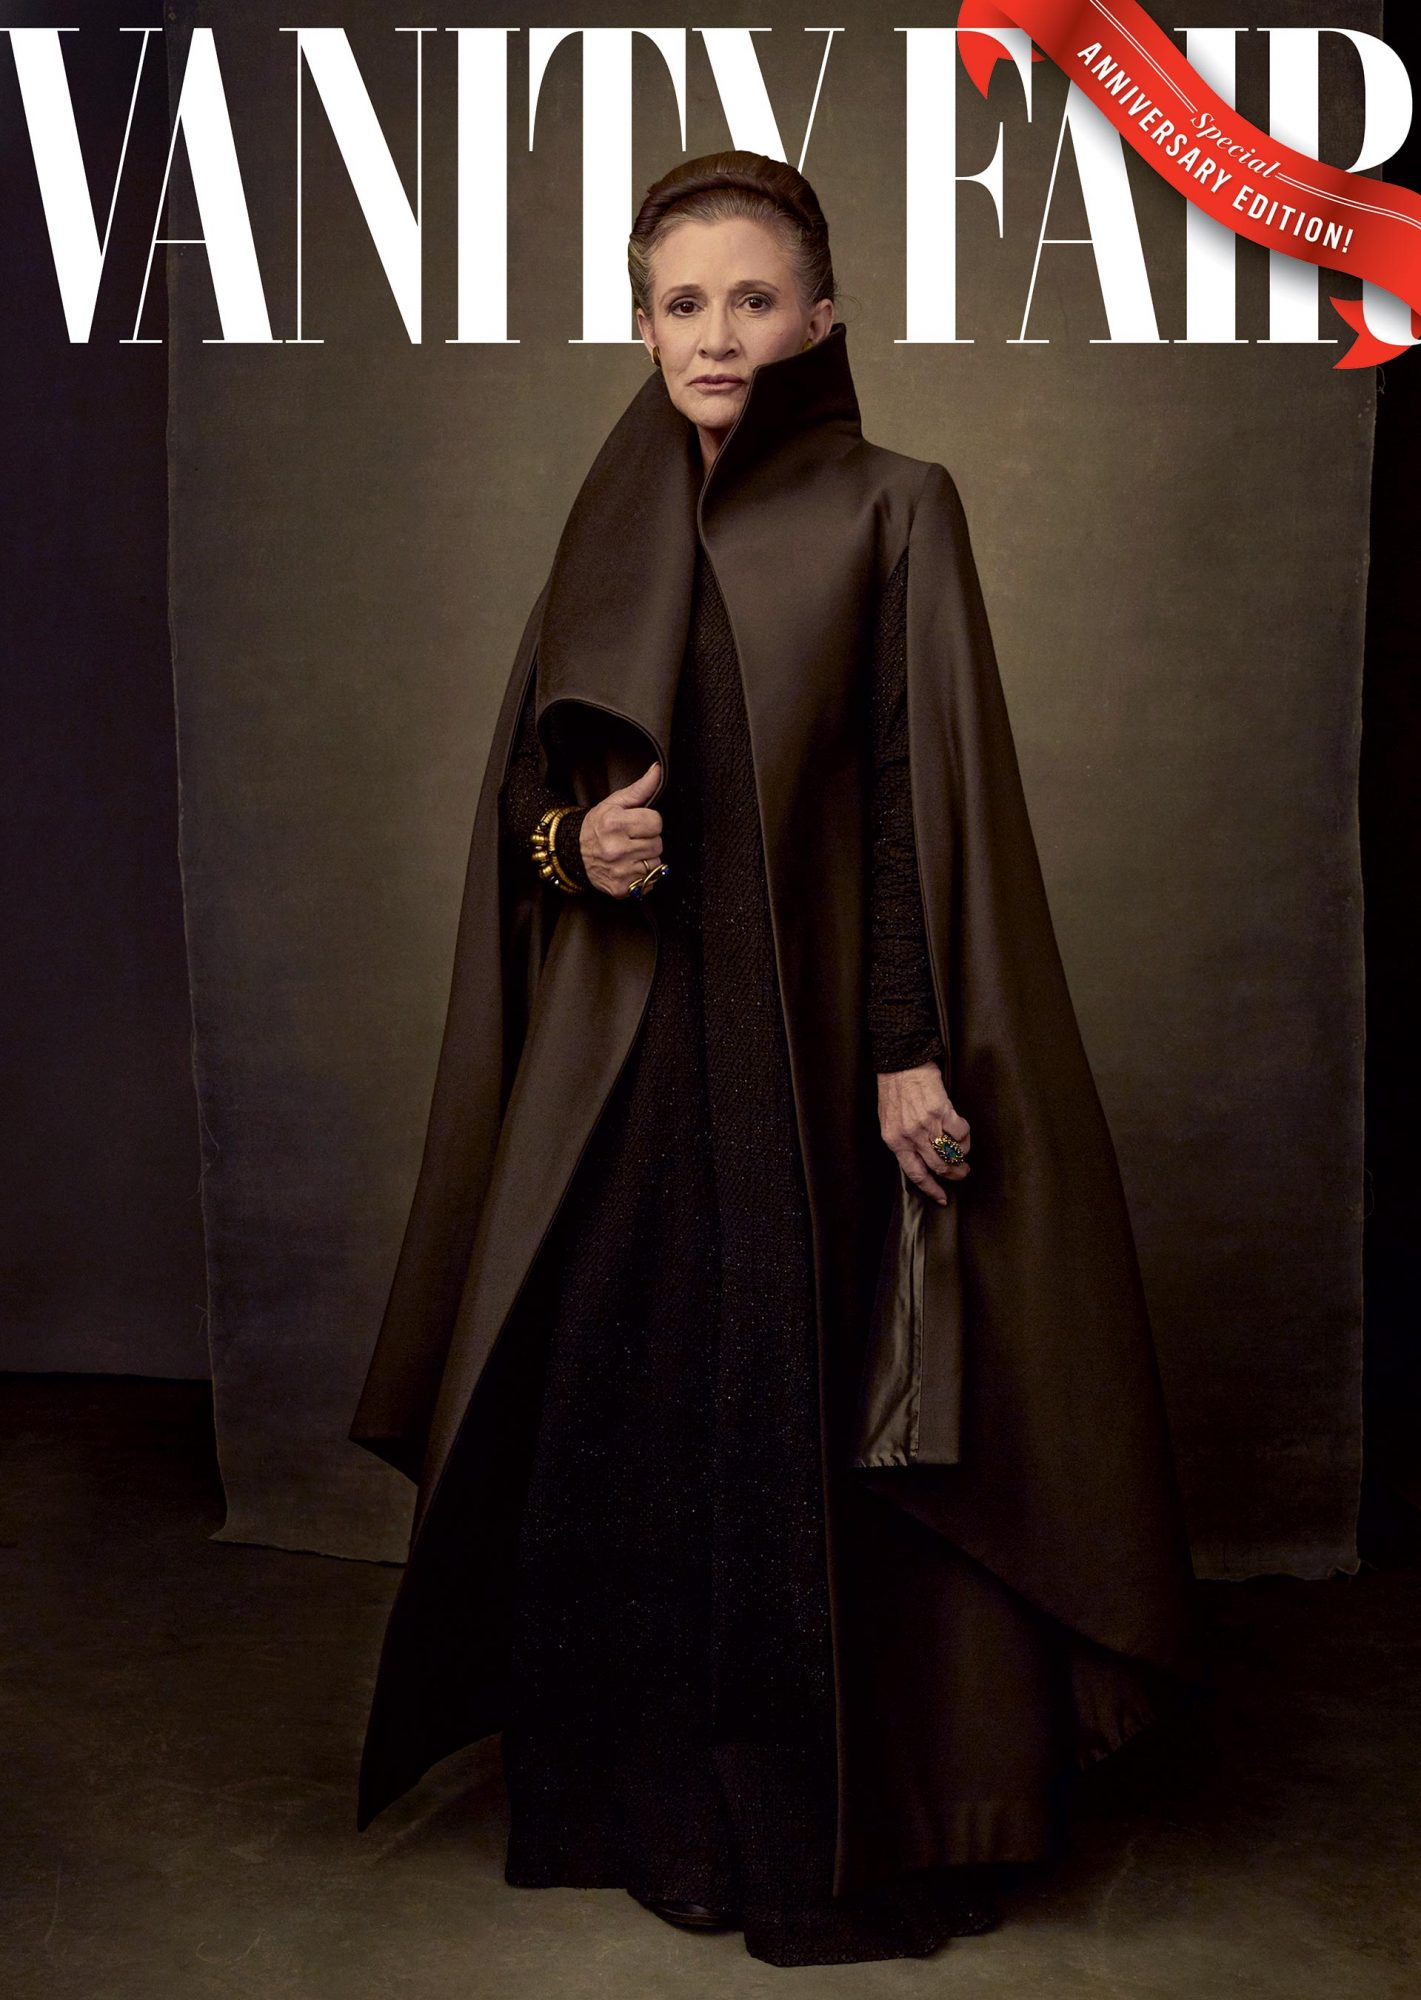 Annie-Leibovitz-06-COVER_with-logo-only_A